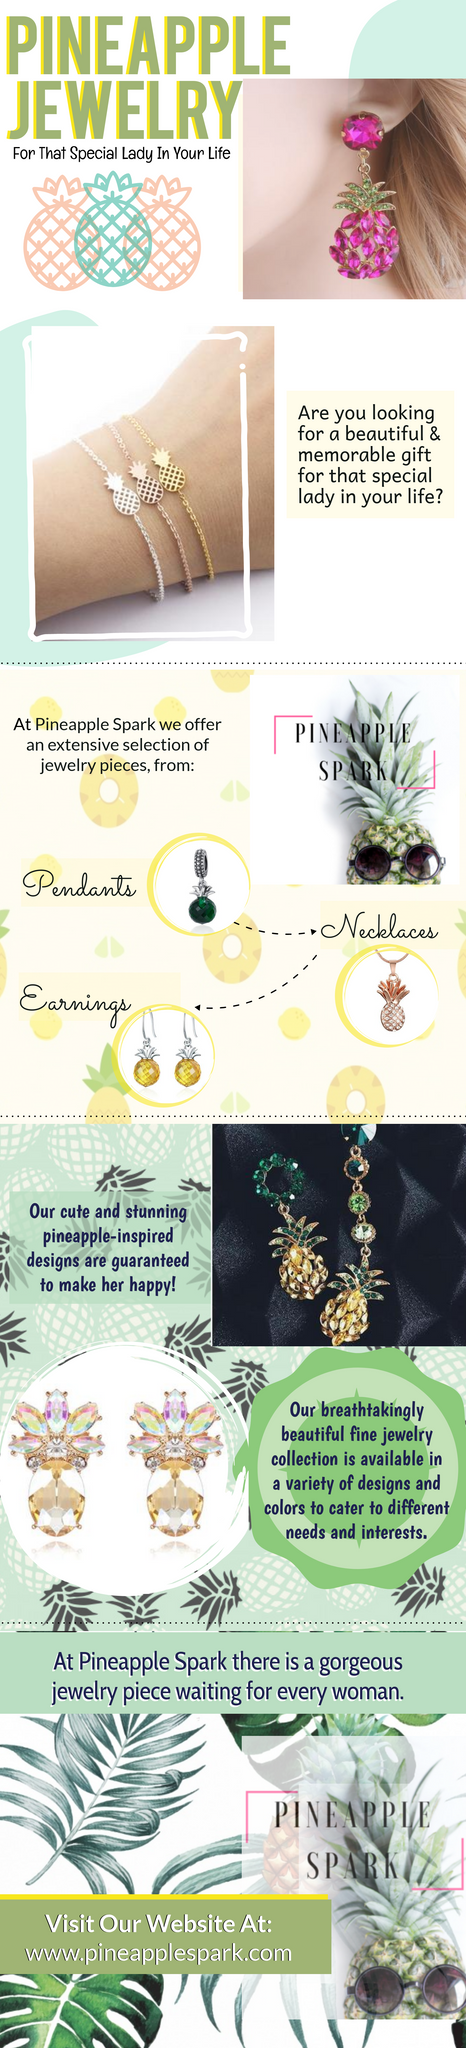 Pineapple jewelry